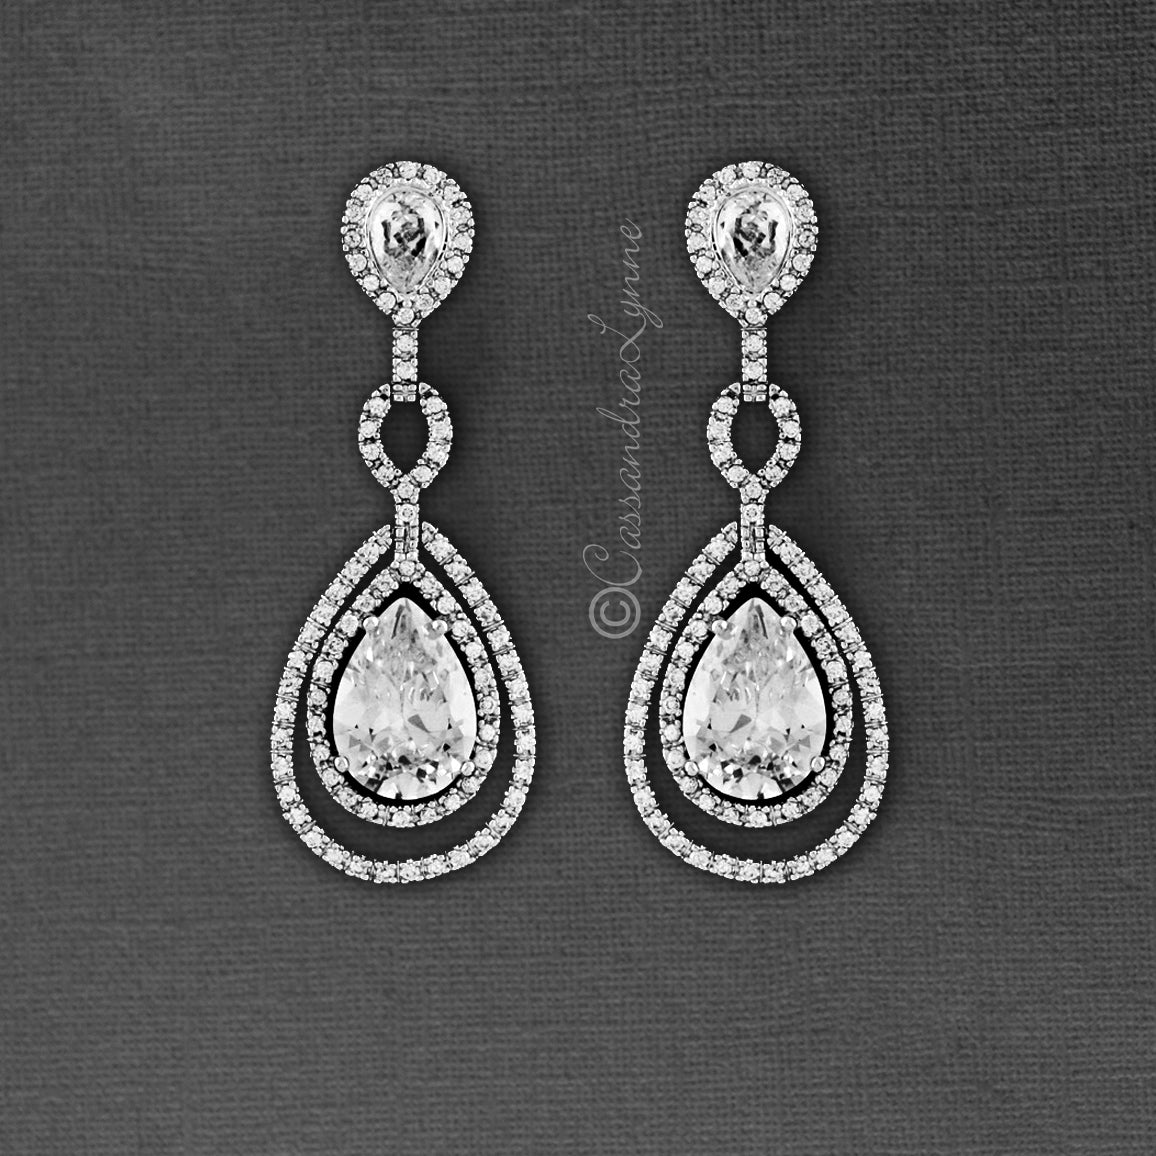 Clip-On Classic Bridal Earrings of Layered Teardrop CZ